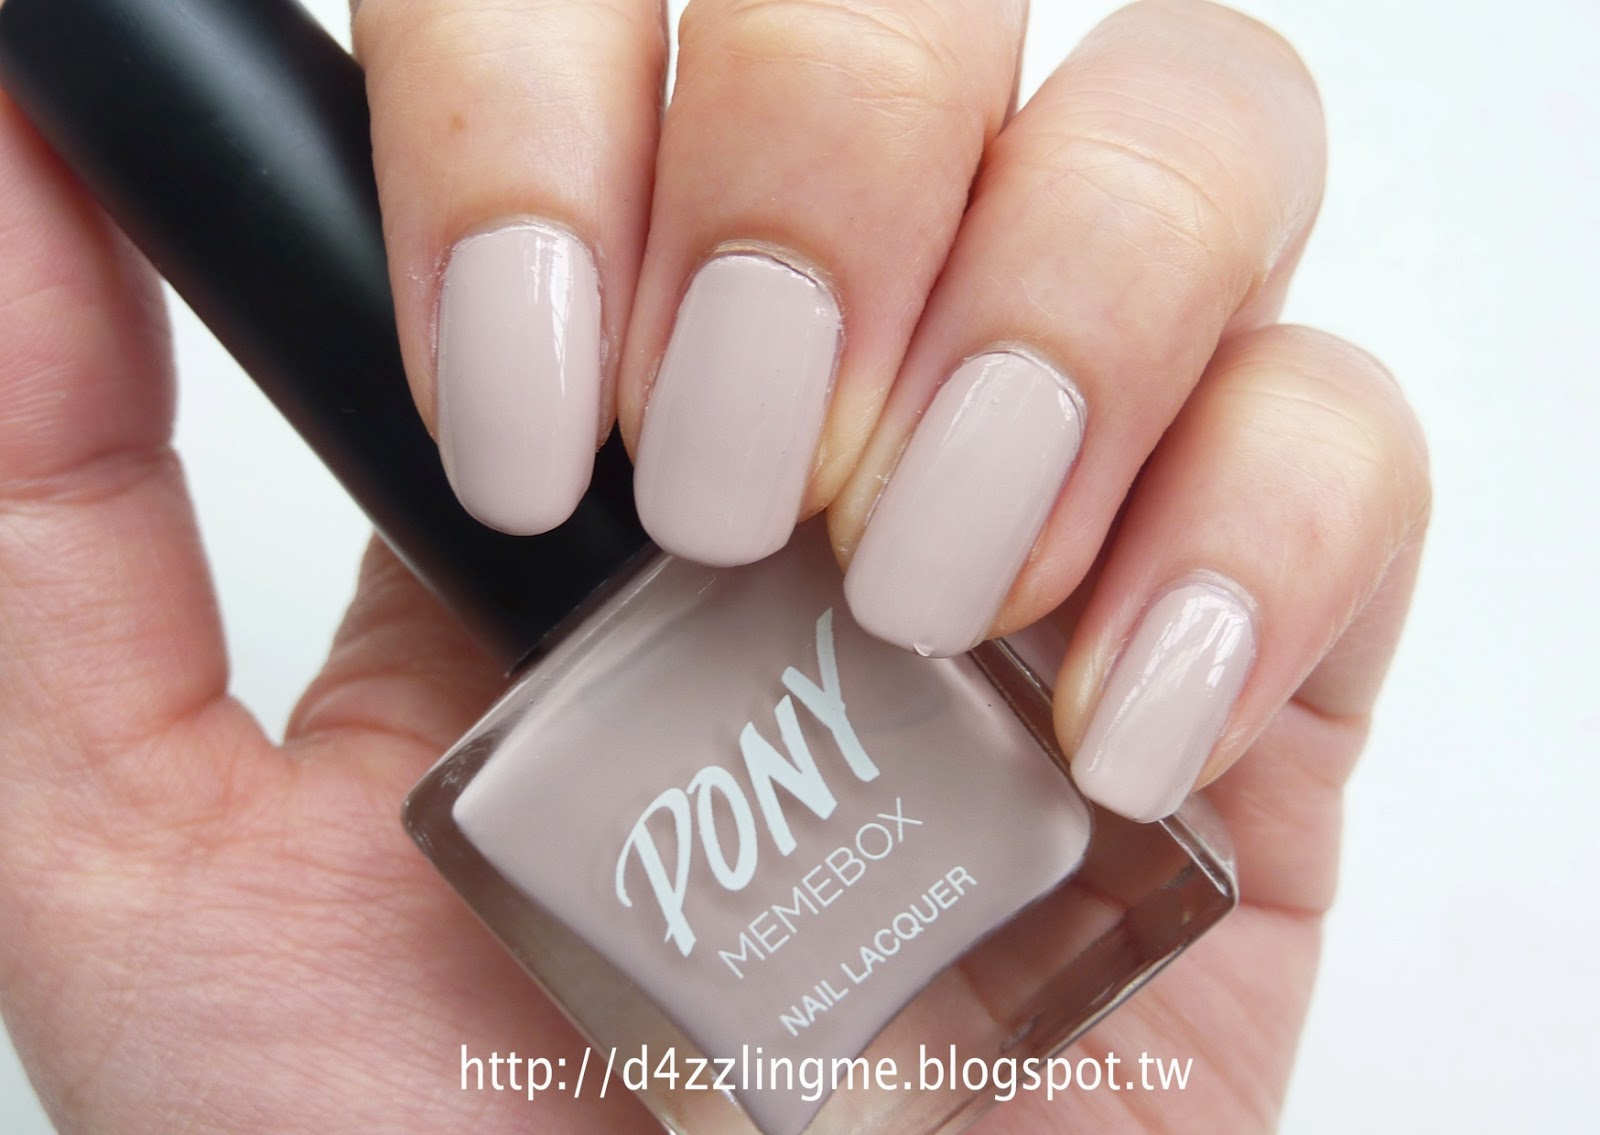 D4zzling Me: PONY X MEMEBOX NAIL LACQUER SPRING 2015 SWATCHES